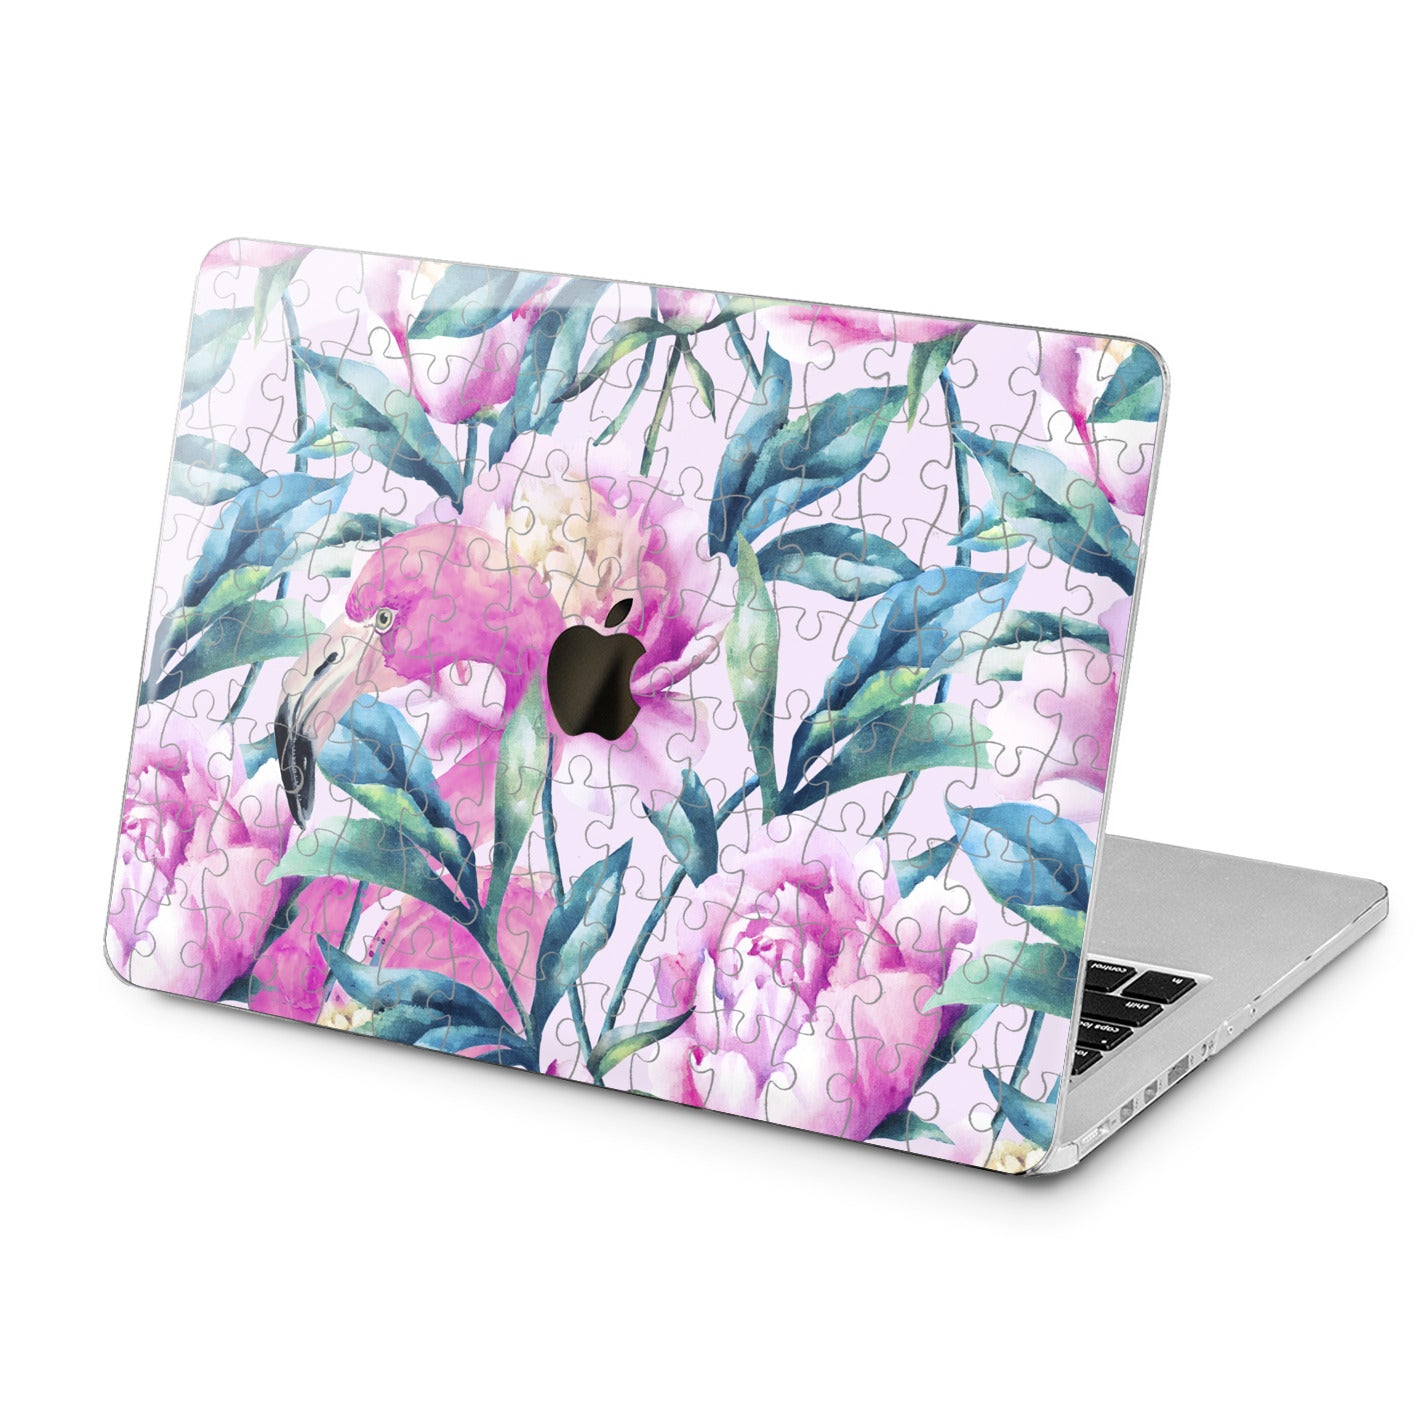 Lex Altern Lex Altern Puzzle Blossom Case for your Laptop Apple Macbook.